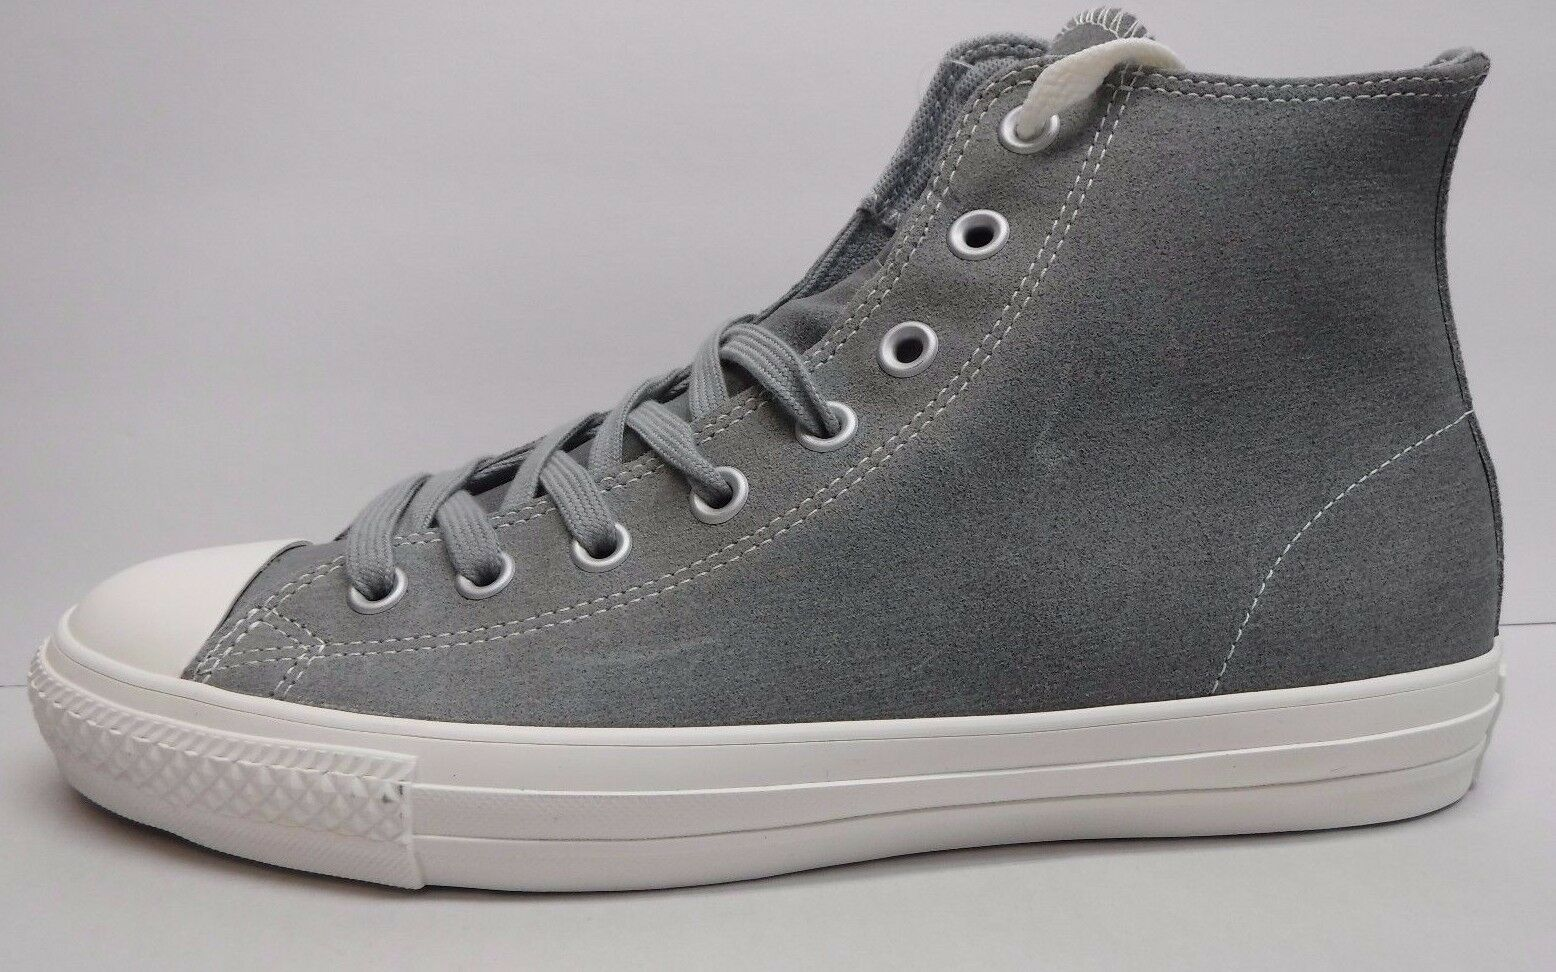 Converse  Chuck Taylor Size 10 Gray  Hi Tops New Sneakers New Mens Shoes